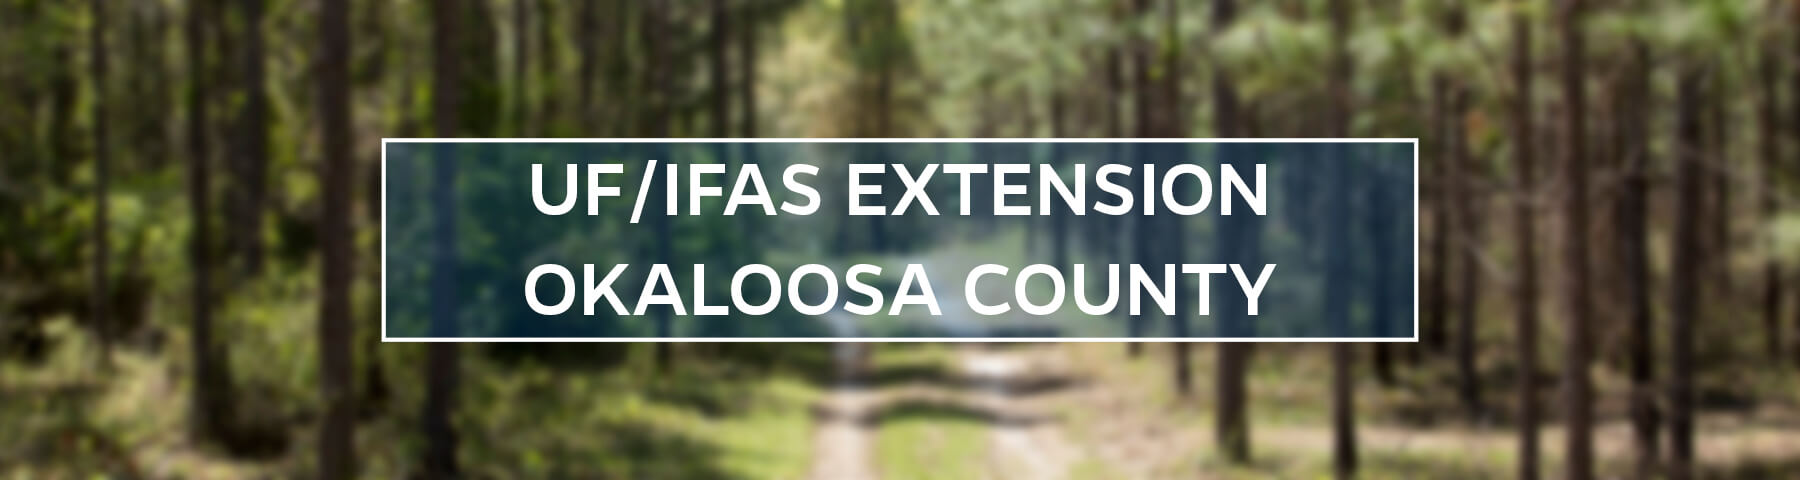 UF/IFAS Extension Okaloosa County